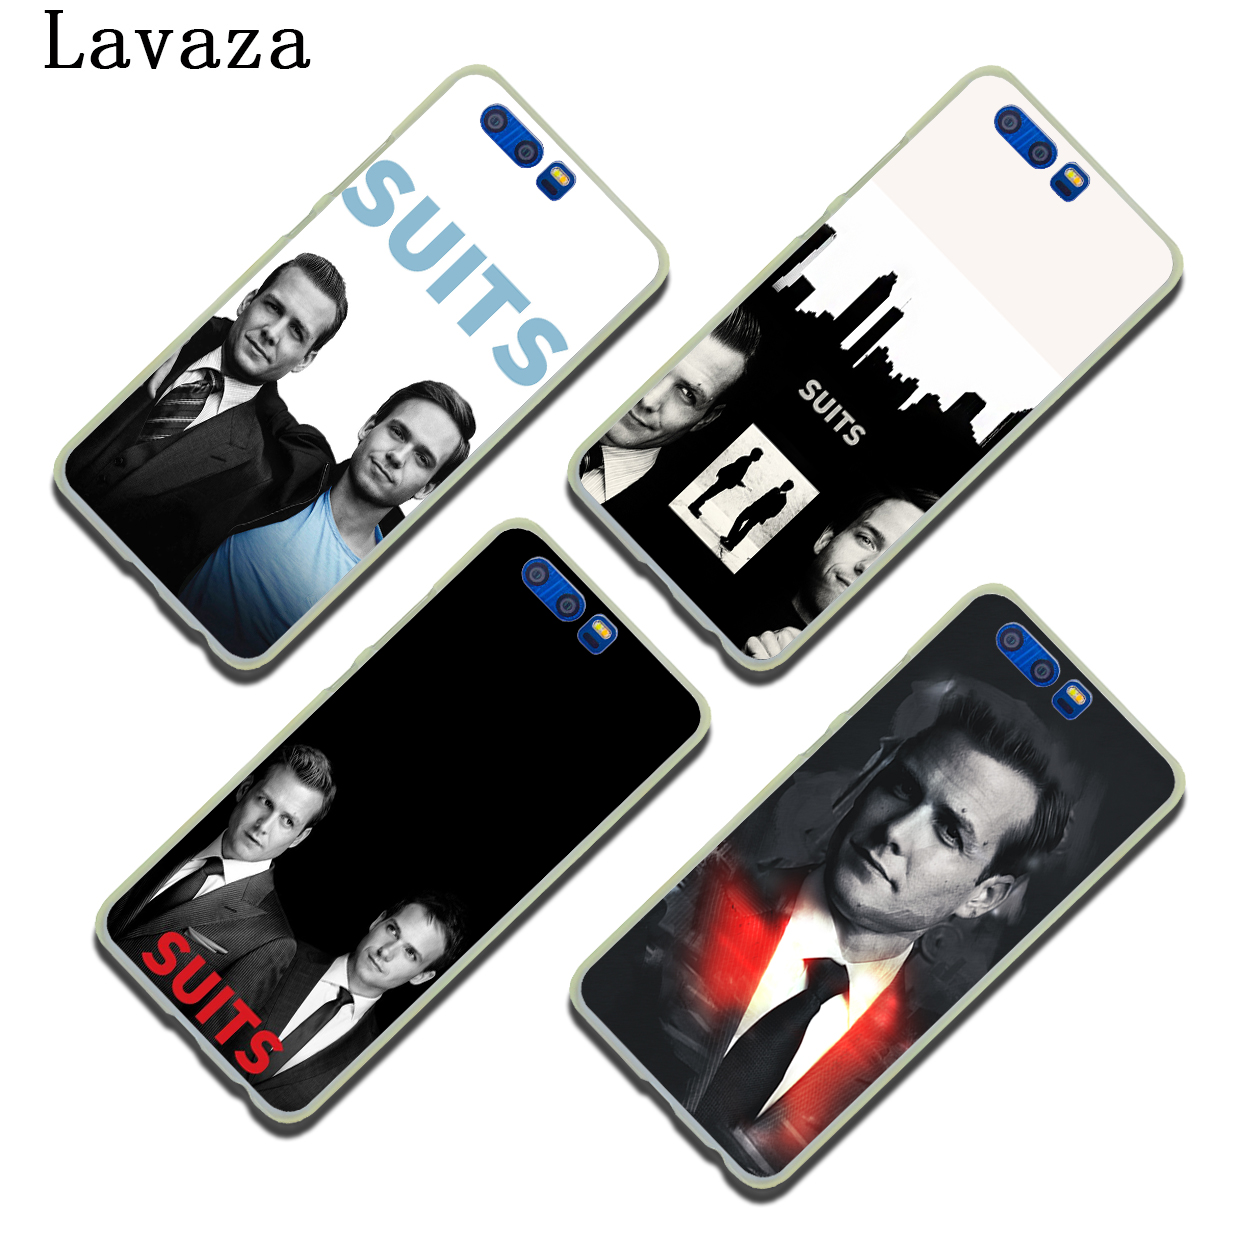 Lavaza Suits TV Show Hard Phone Case for Huawei Y6 Y5 Y3 II Y7 2017 Nova 2 Plus 2S 2i & Honor 9 8 Lite 7 7X 6 6A 6X Cover